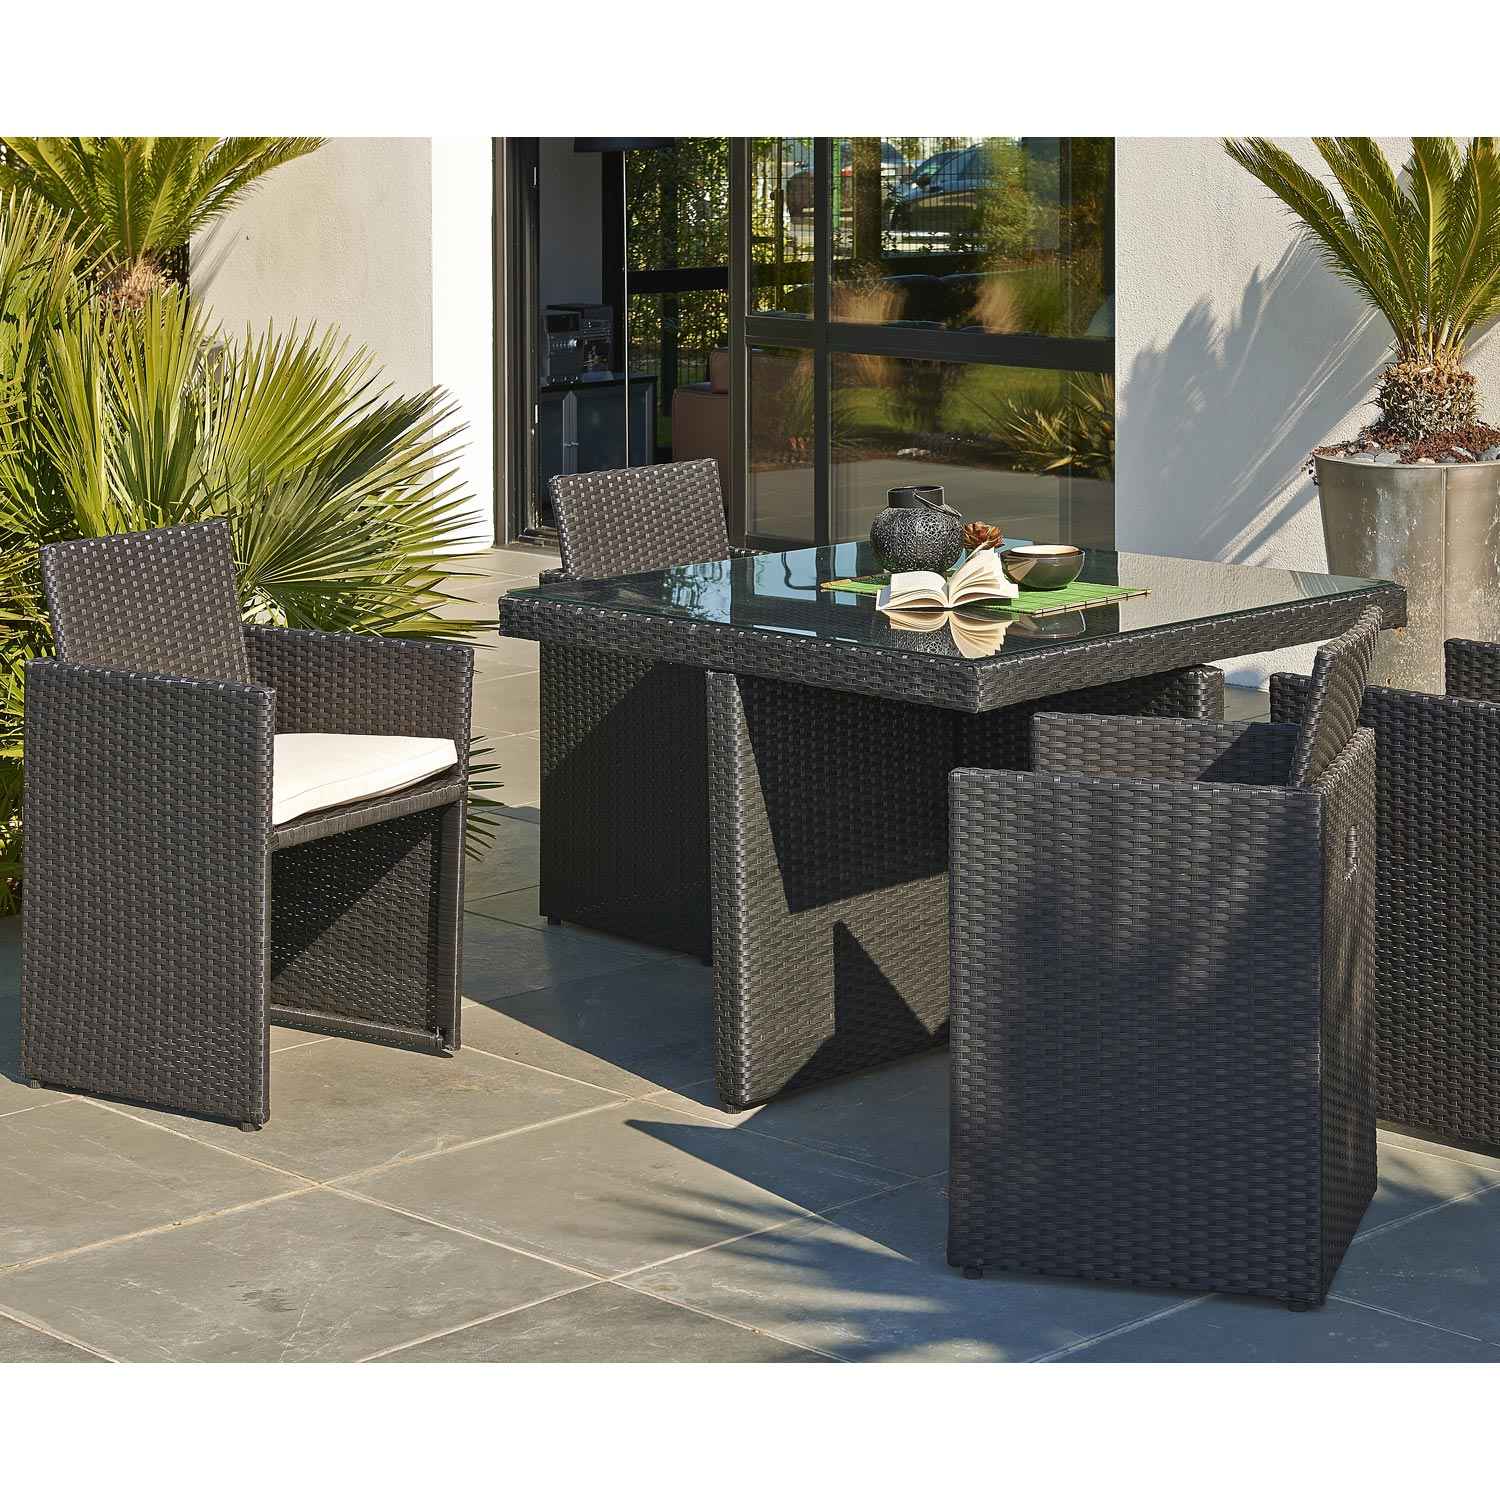 salon de jardin encastrable r sine tress e noir 4 personnes leroy merlin. Black Bedroom Furniture Sets. Home Design Ideas